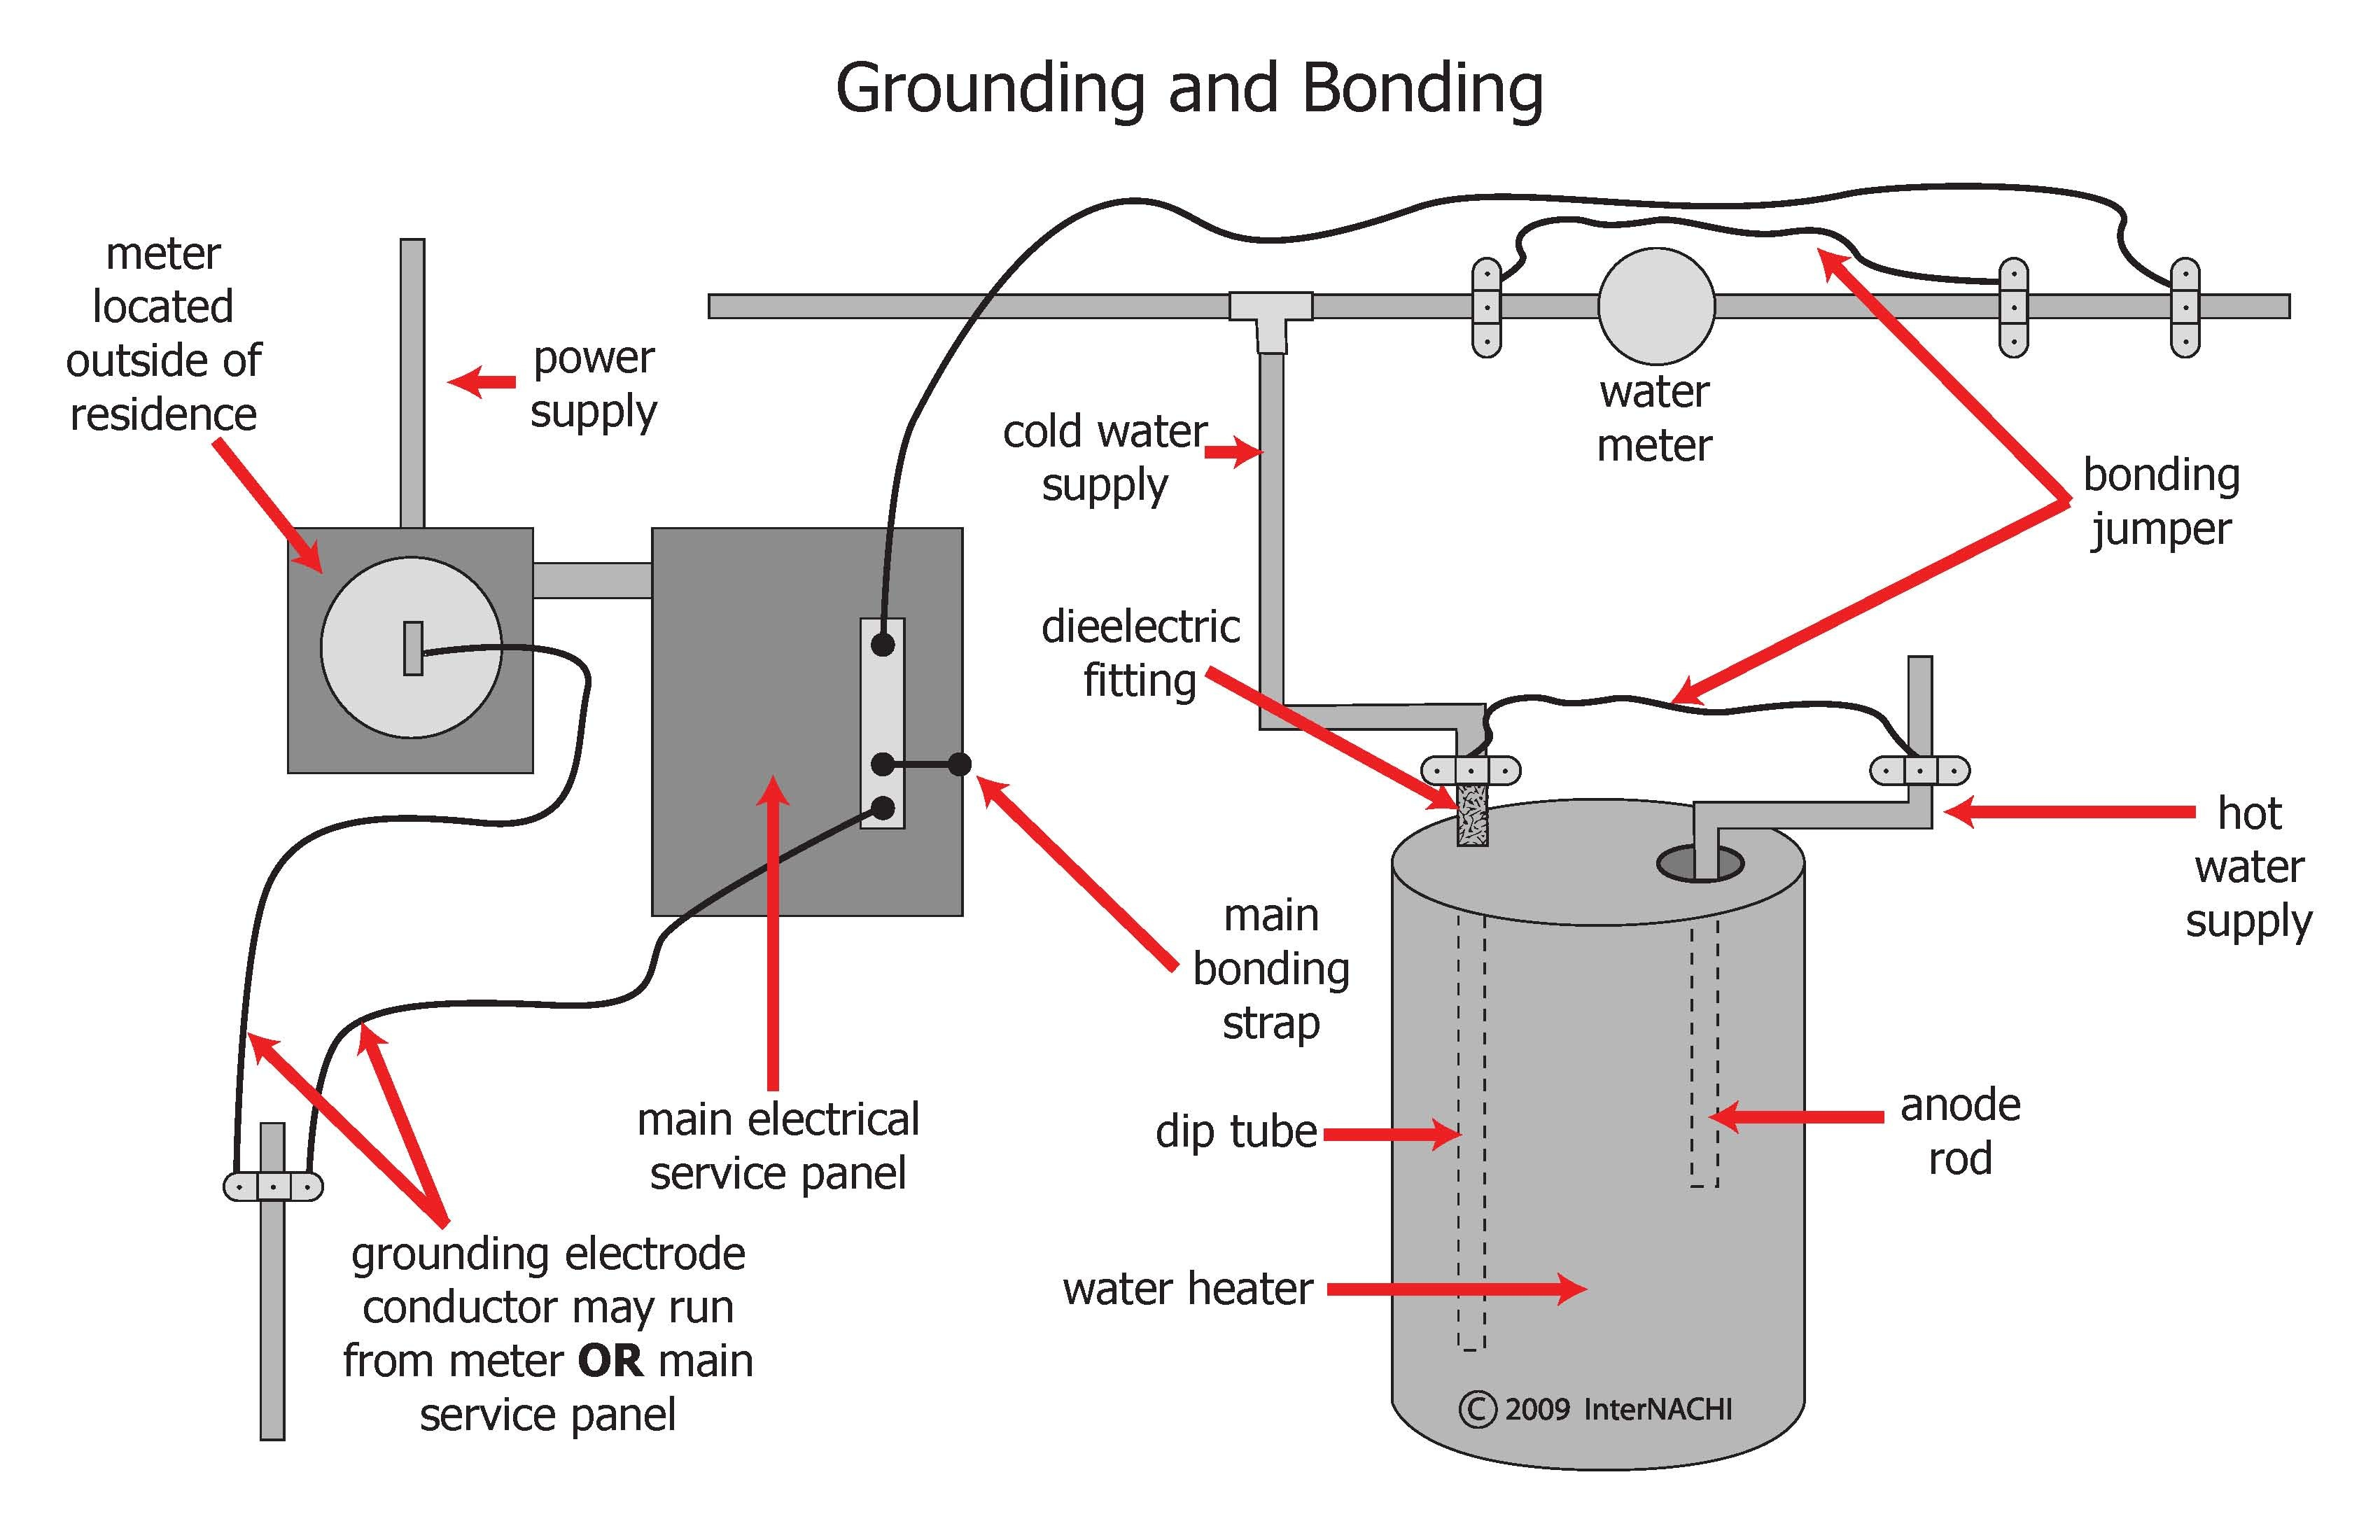 Px Kva Three Phase Utility Stepdown furthermore Best Ideas About Home Electrical Wiring On Pinterest Throughout Home Electrical Wiring Diagrams together with Grounding Bonding together with Electricutilitypoletransformerfusepicturelabeled additionally E A F Eb A E E Ba D B Electrical Wiring Diagram Solar Energy. on residential power pole to transformer wiring diagram